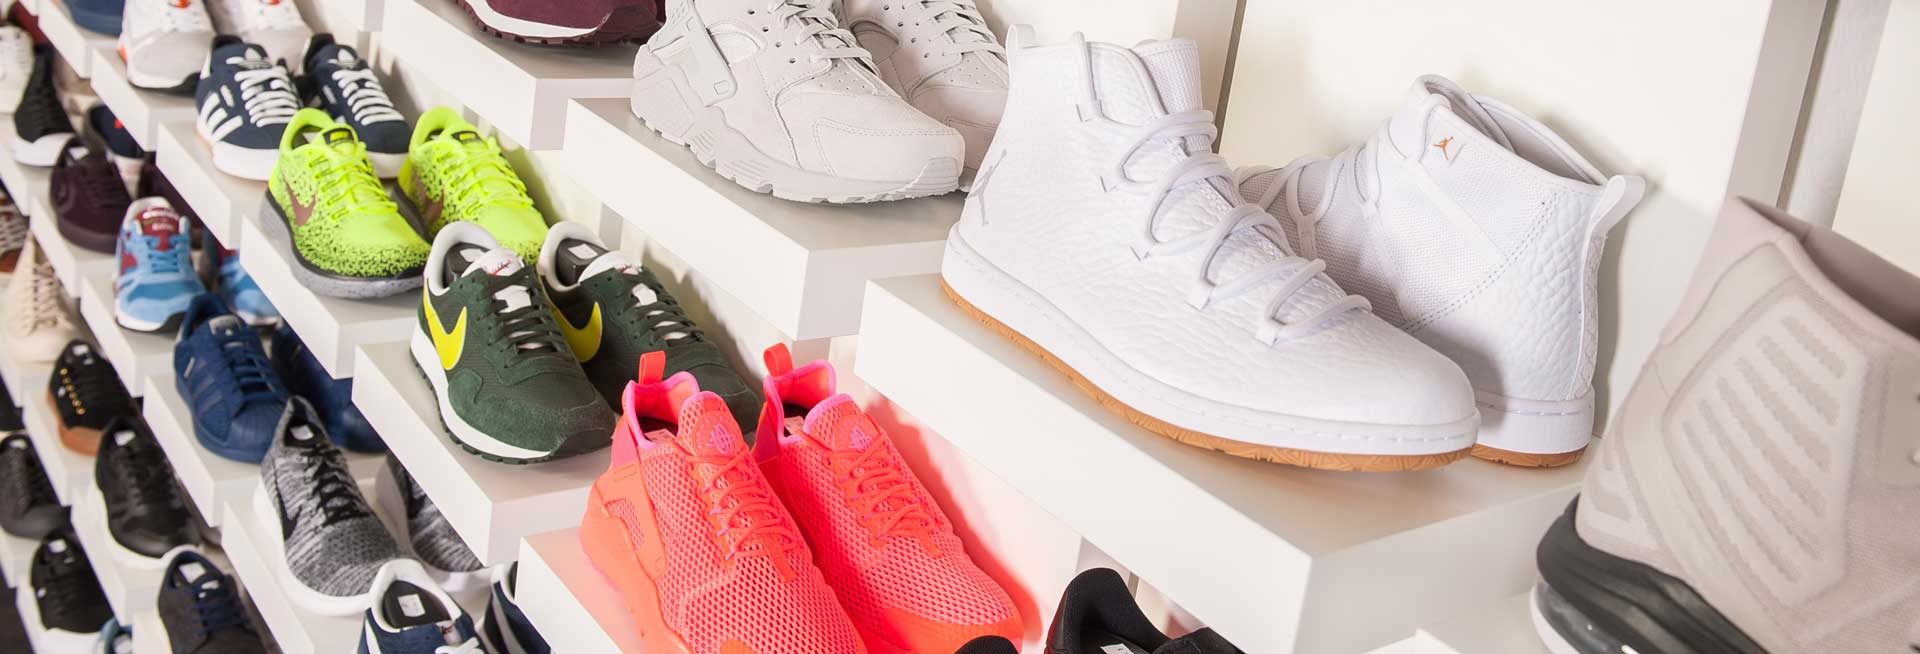 separation shoes d7106 69e4c There are different types of Nike shoes and the cleaning method always not  the same. You should follow these steps while cleaning your Nike shoes-